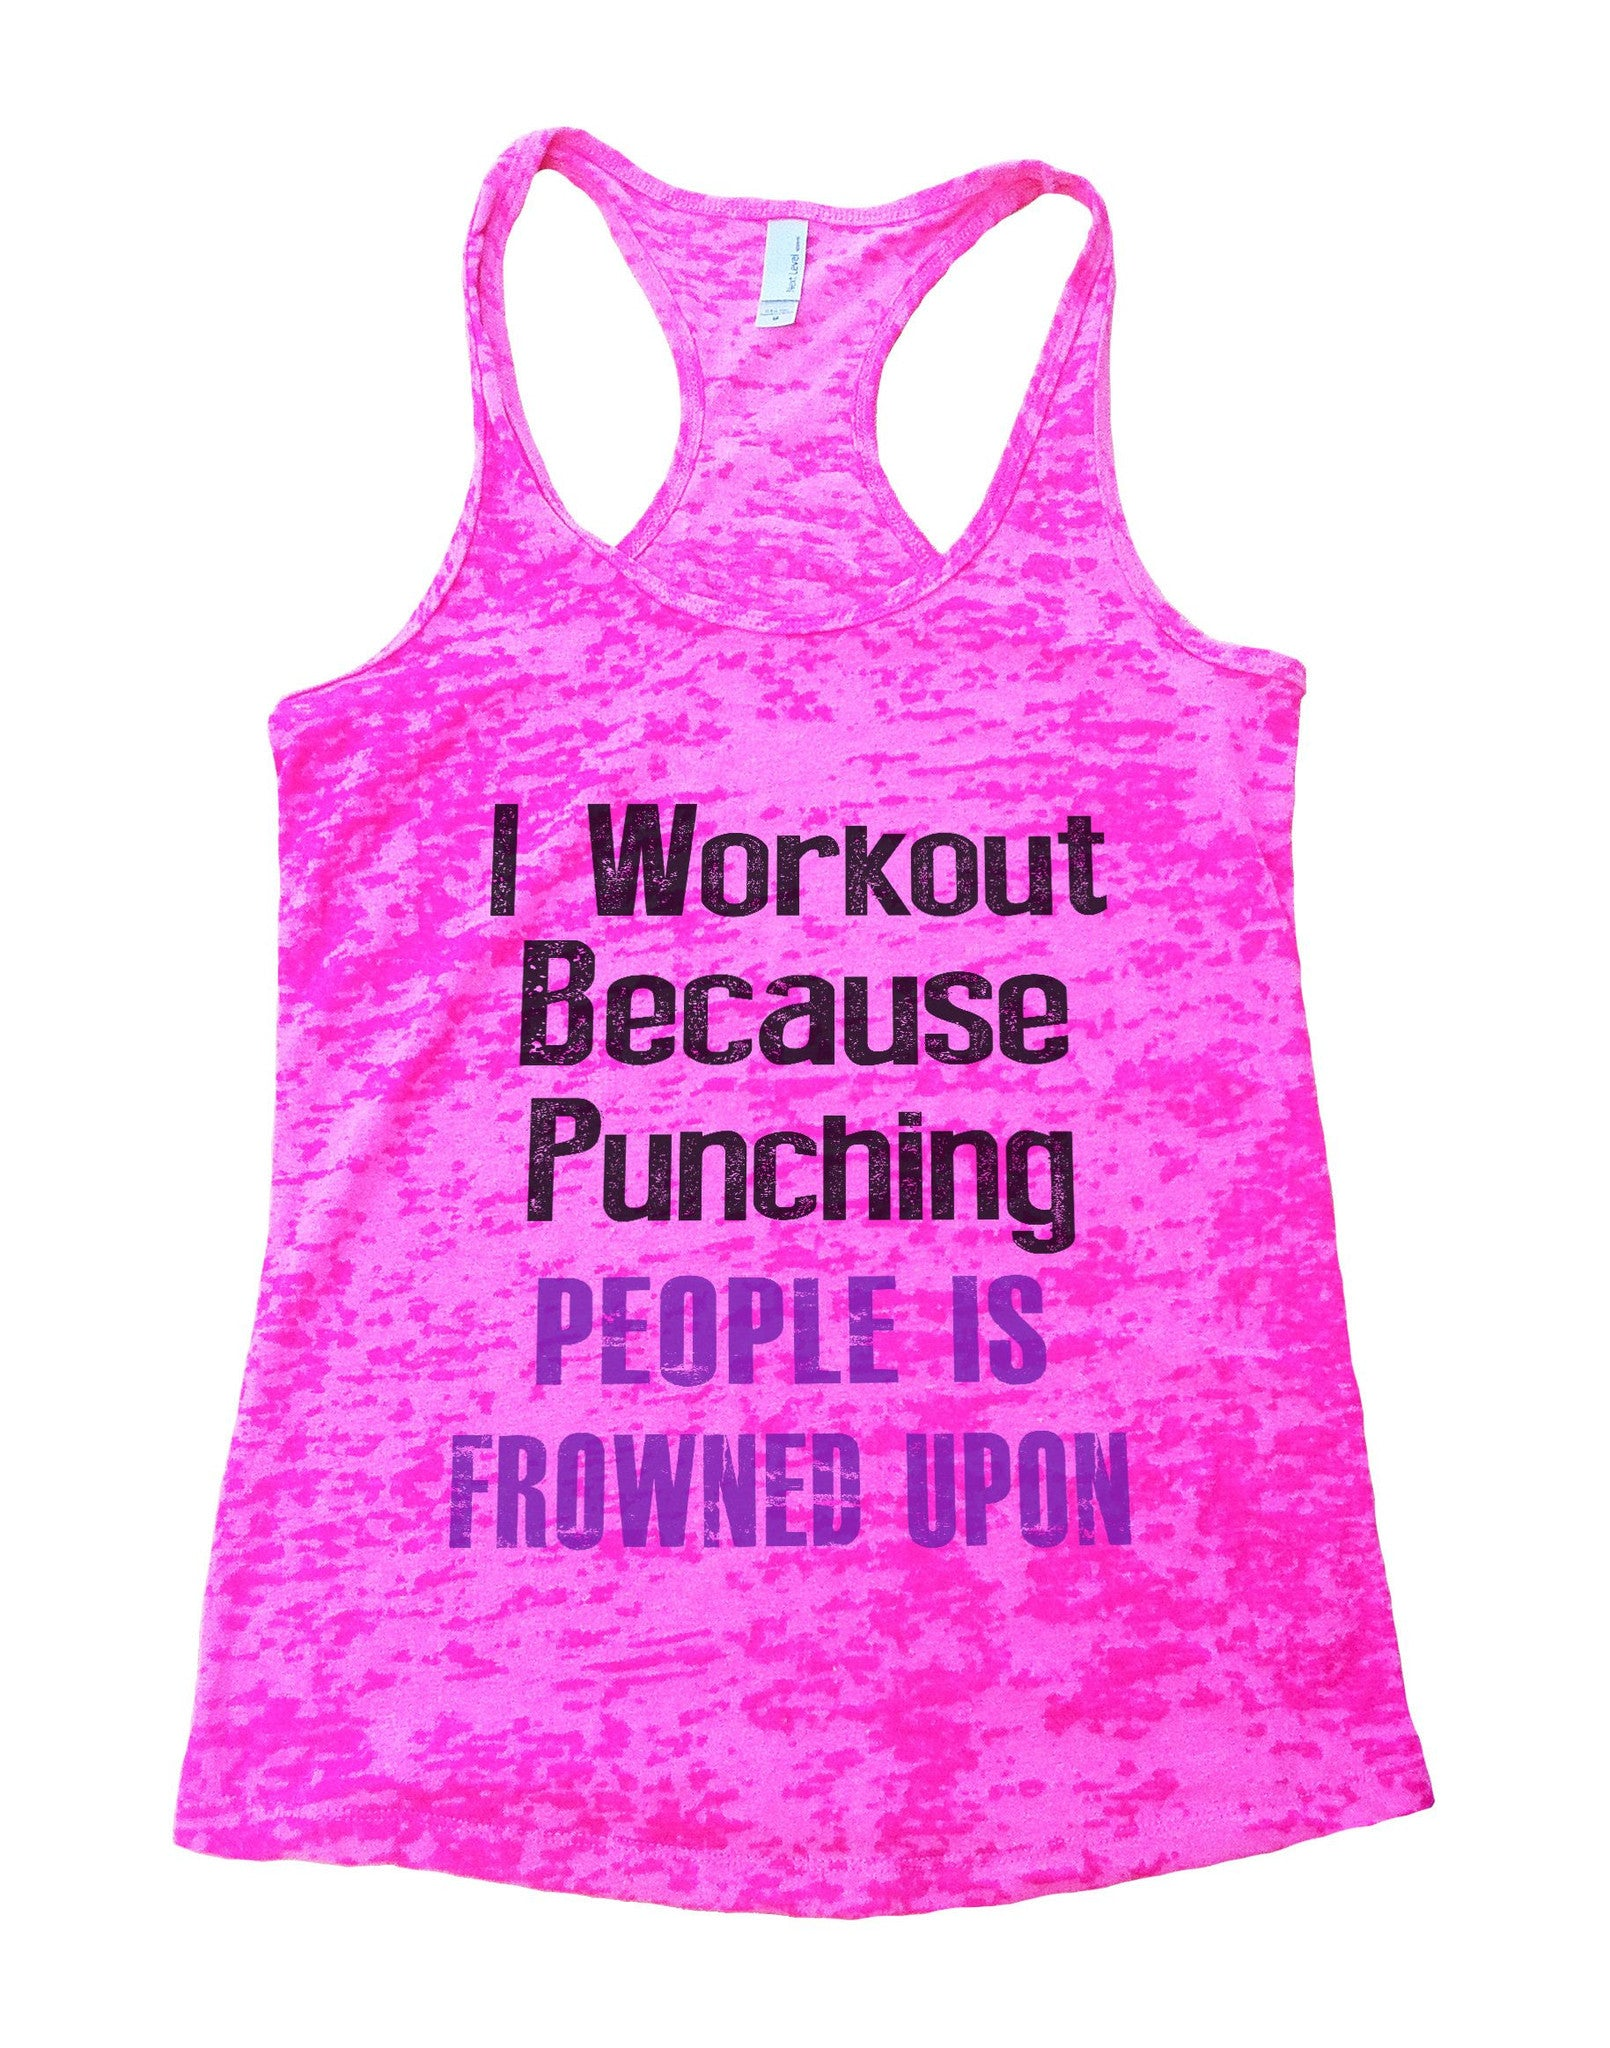 I Workout Because Punching People Is Frowned Upon Burnout Tank Top By BurnoutTankTops.com - 681 - Funny Shirts Tank Tops Burnouts and Triblends  - 4